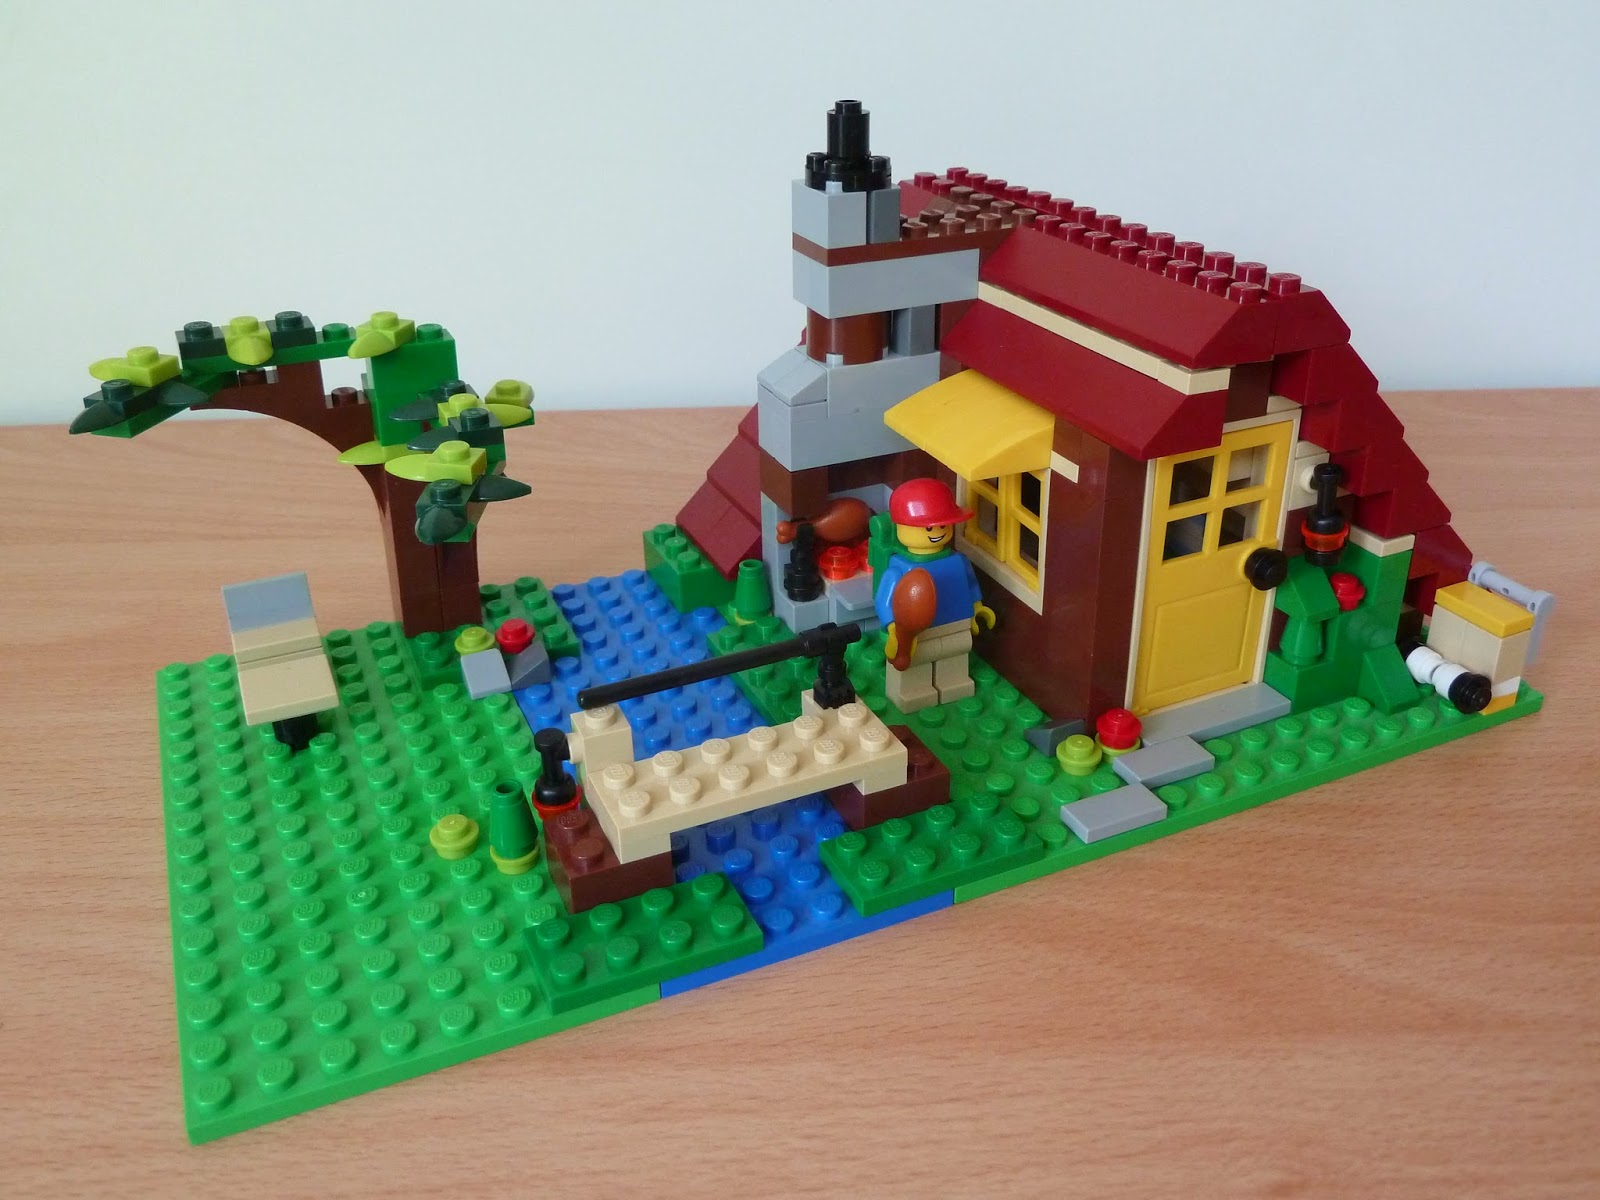 Superb img of LEGO 5766 LEGO CREATOR 3 IN 1 Log Cabin River Hut Deuxième modèle (2  with #168337 color and 1600x1200 pixels